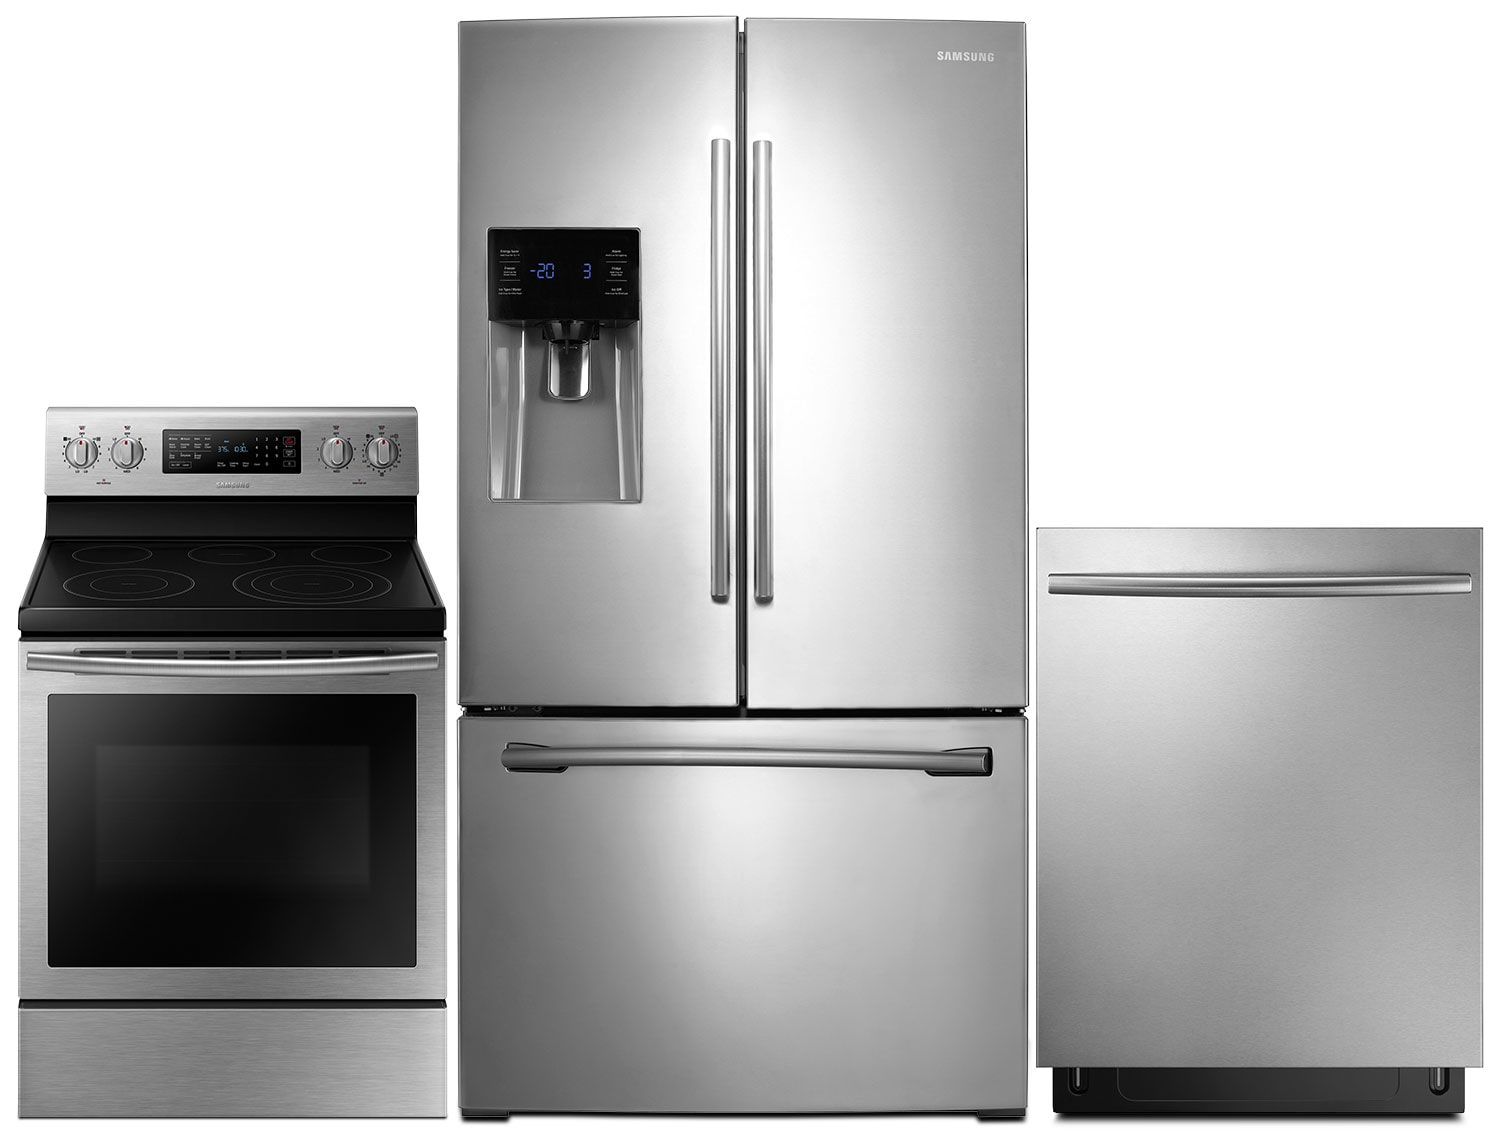 Refrigerators and Freezers - Samsung 26 Cu. Ft. French-Door Refrigerator, 5.9 Cu. Ft. Electric Range and Dishwasher